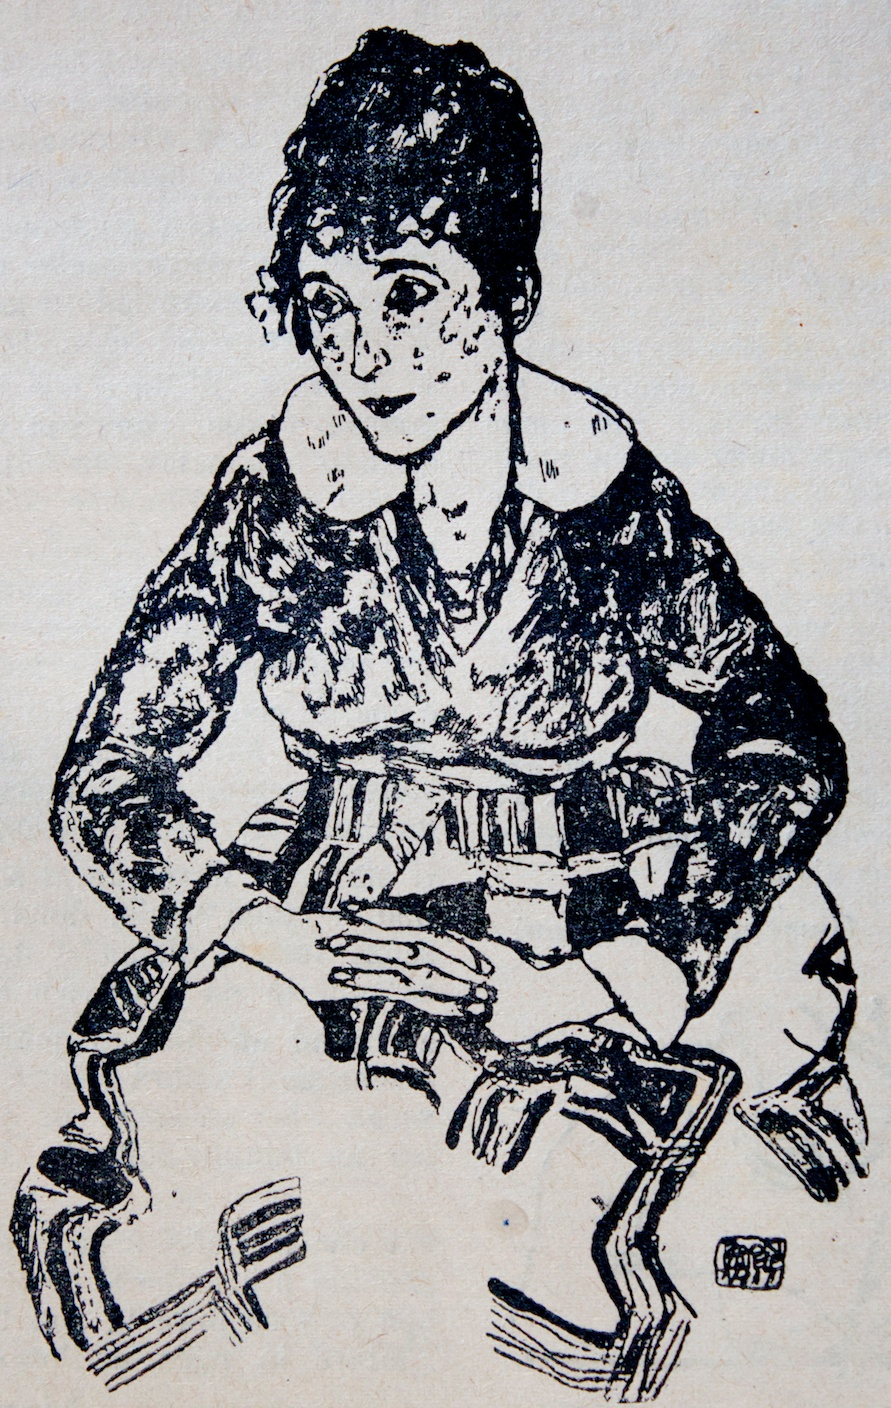 Egon Schiele - Egon Schiele was born in 1890 in Tulln, a small city near Vienna.In 1907, Schiele met Gustav Klimt who took him under his wings. he took a particular interest in the gifted young Schiele.Klimt invited Schiele to exhibit some of his works at the 1909 Vienna Kunstschau, where he encountered the work of Edvard Munch, Jan Toorop, and Vincent van Gogh among others. Once free of the constraints of the Academy's conventions, Schiele began to explore the human form, and the human sexuality.In 1912, Schiele was arrested for seducing a girl below the age of consent. He spent 24 days in prison and there he painted a series of 12 paintings portraying the distress of the prison life.In 1918, Schiele participated in the Secession's 49th exhibition in Vienna. He displayed in total 50 works and drew a poster for the exhibition evocation of the 'Last Supper', with a picture of himself in the place of Christ.The sexual undertone in his work was highly criticized during his time, was called vulgar and grotesque but today they are considered as masterpieces.In 1918, Schiele's wife, Edith, died of the Spanish flu, which had already killed 20,000,000 people in Europe. When she died she was 6 months pregnant and within three days of her death, Schiele also succumbed to it and died.